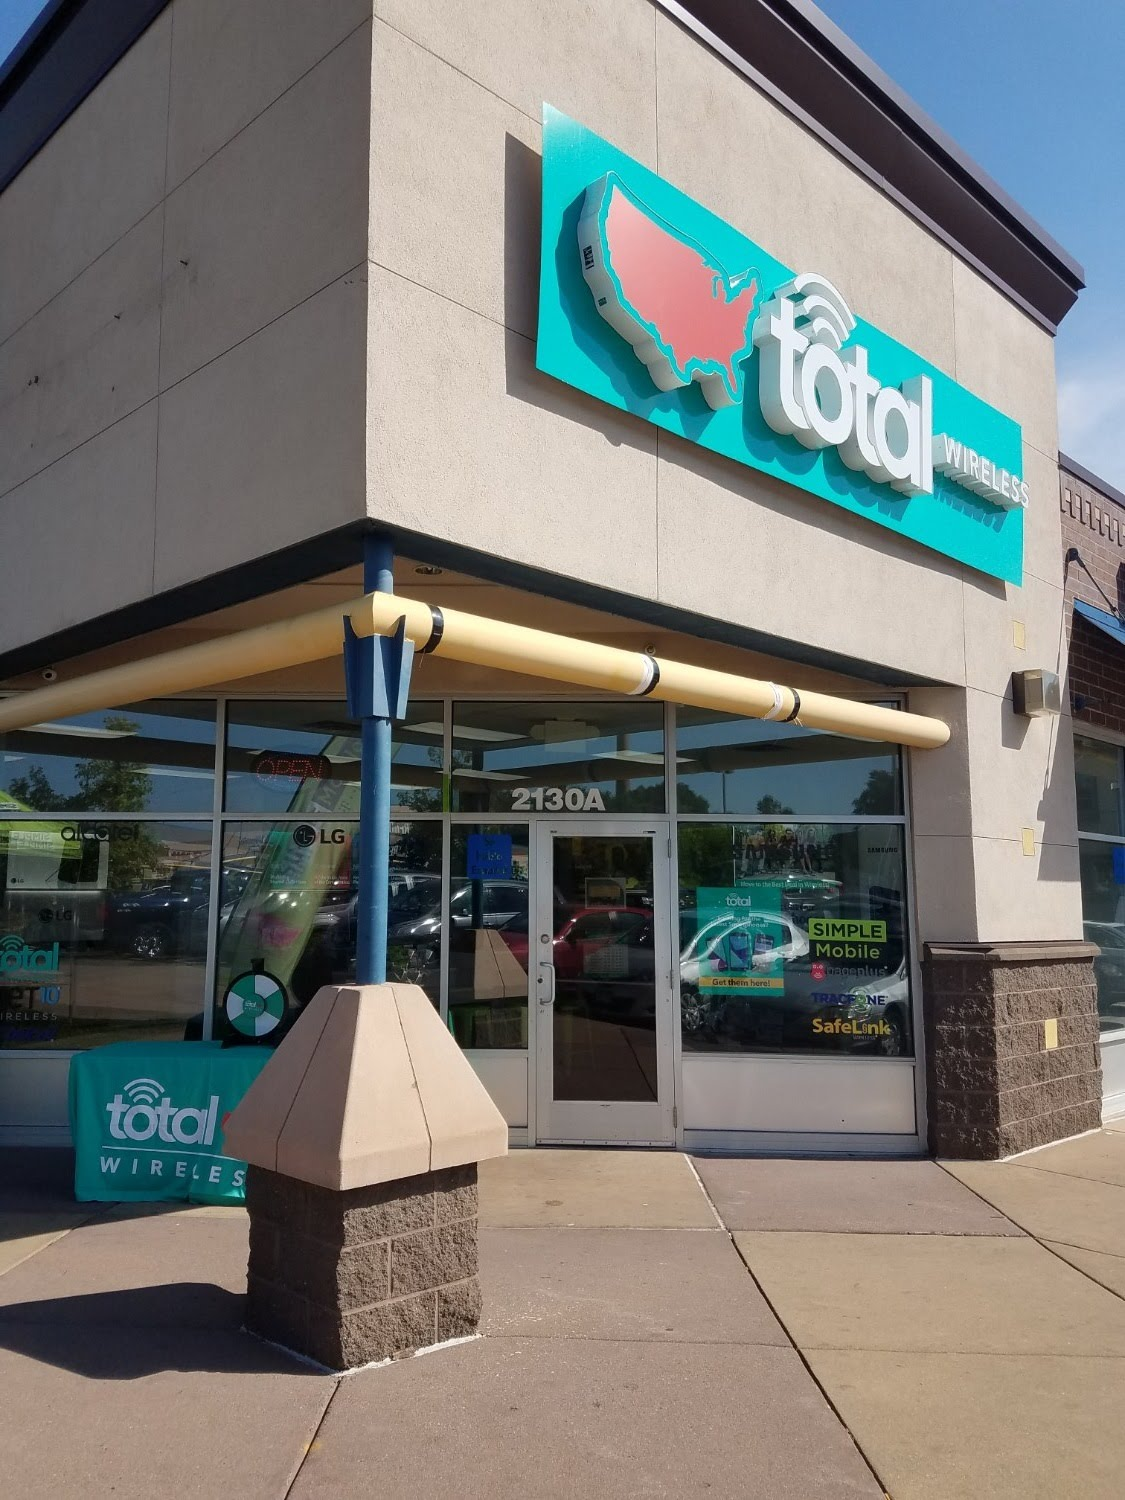 Total Wireless Store front image in Minneapolis,  MN